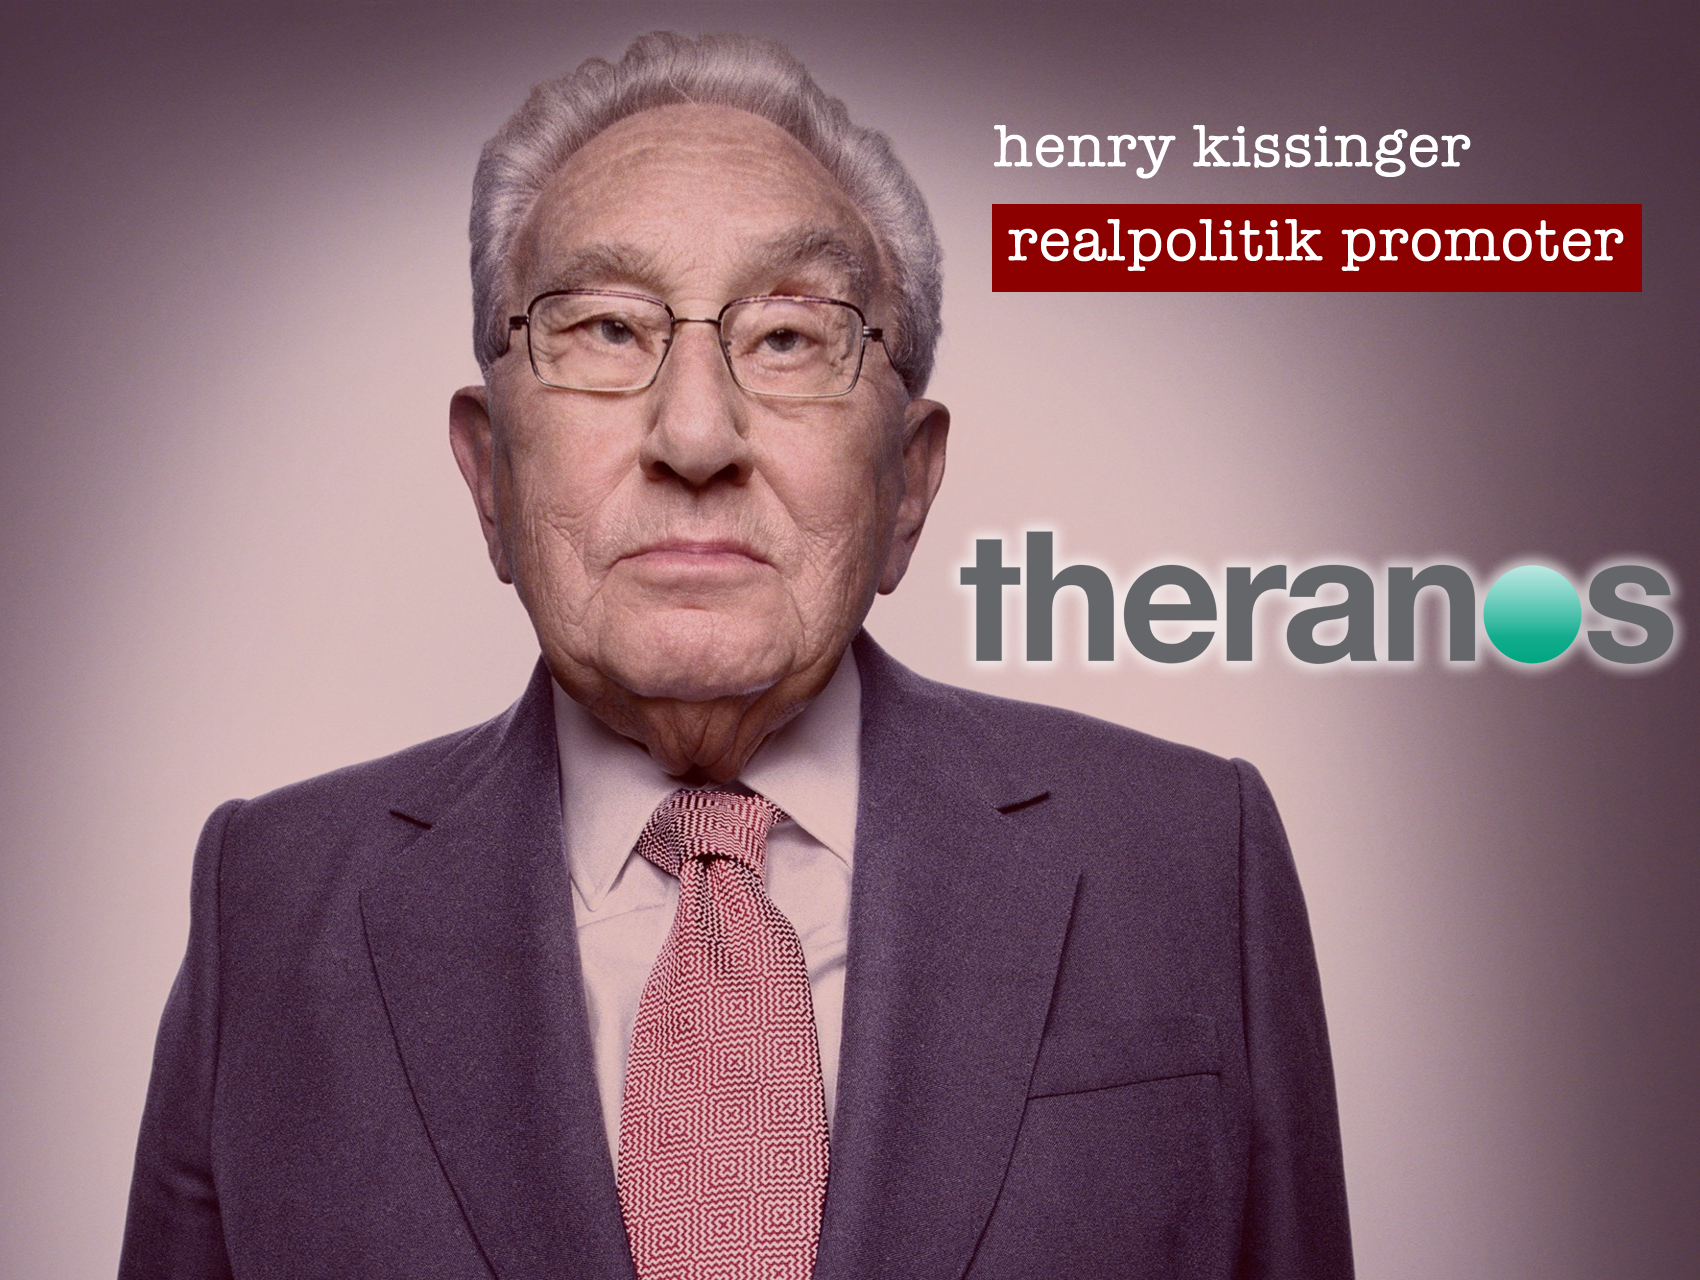 henry kissinger theranos vampire cult